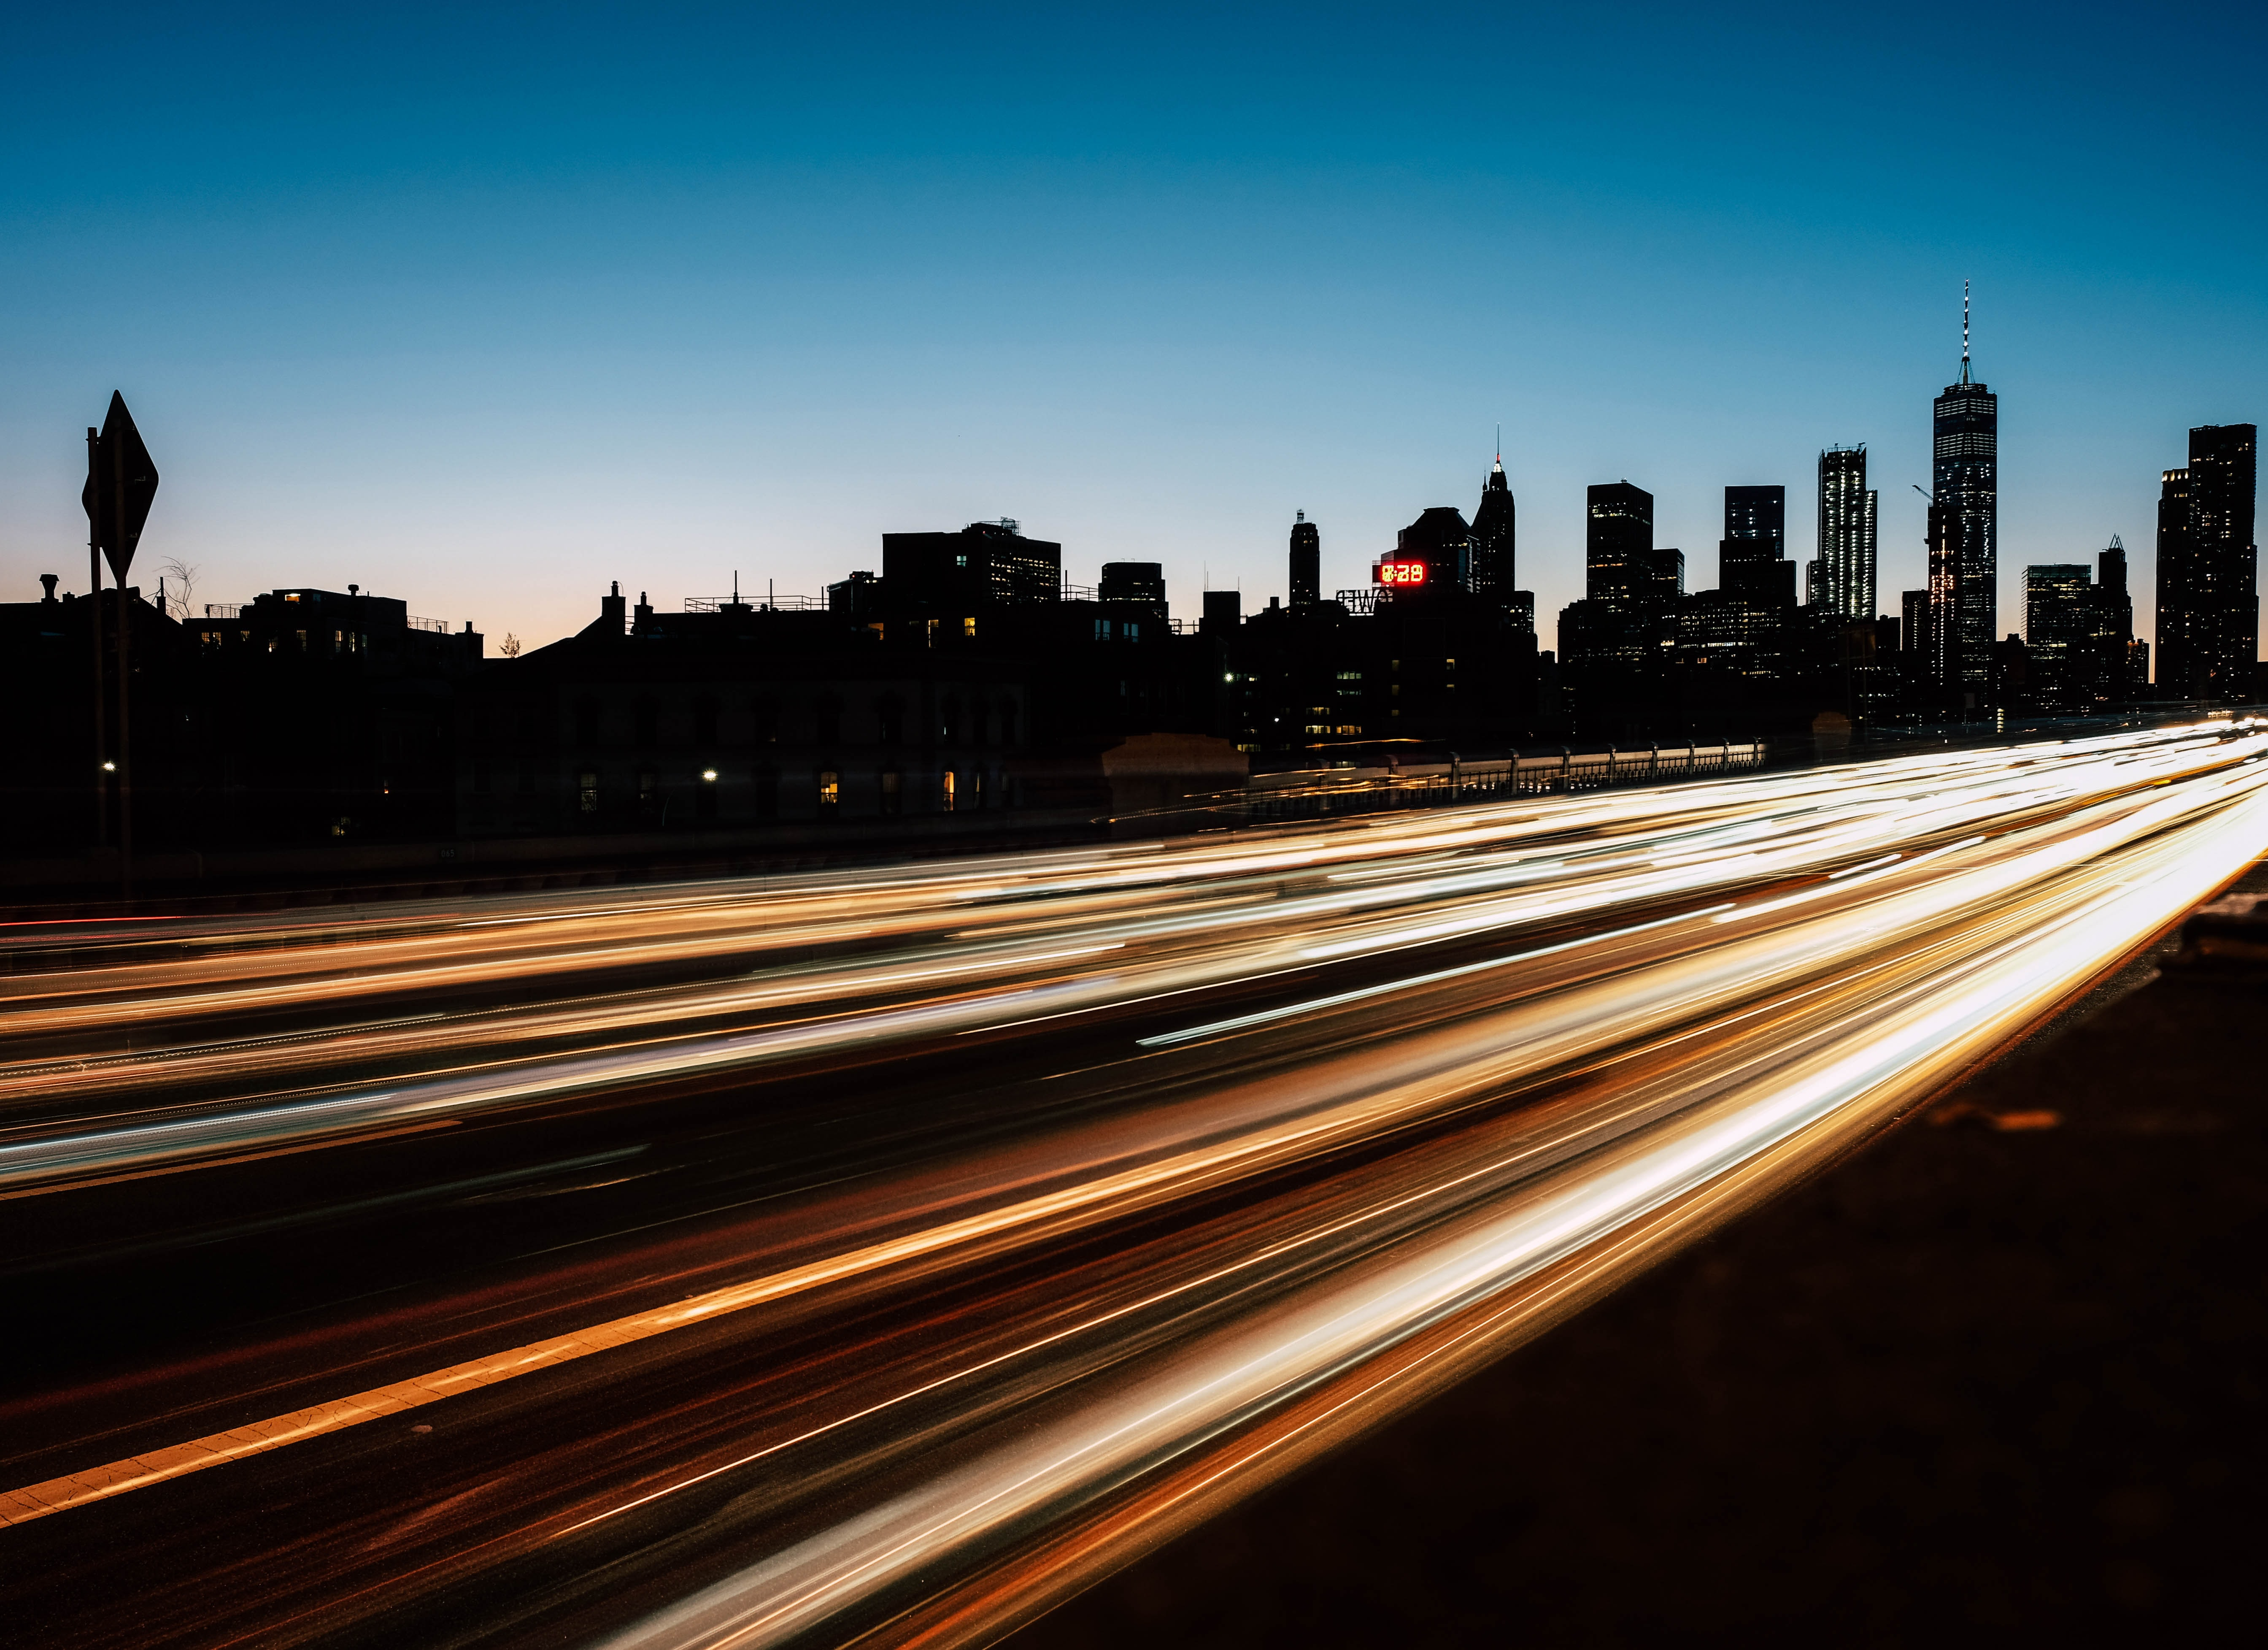 time lapse photography of passing vehicles on road